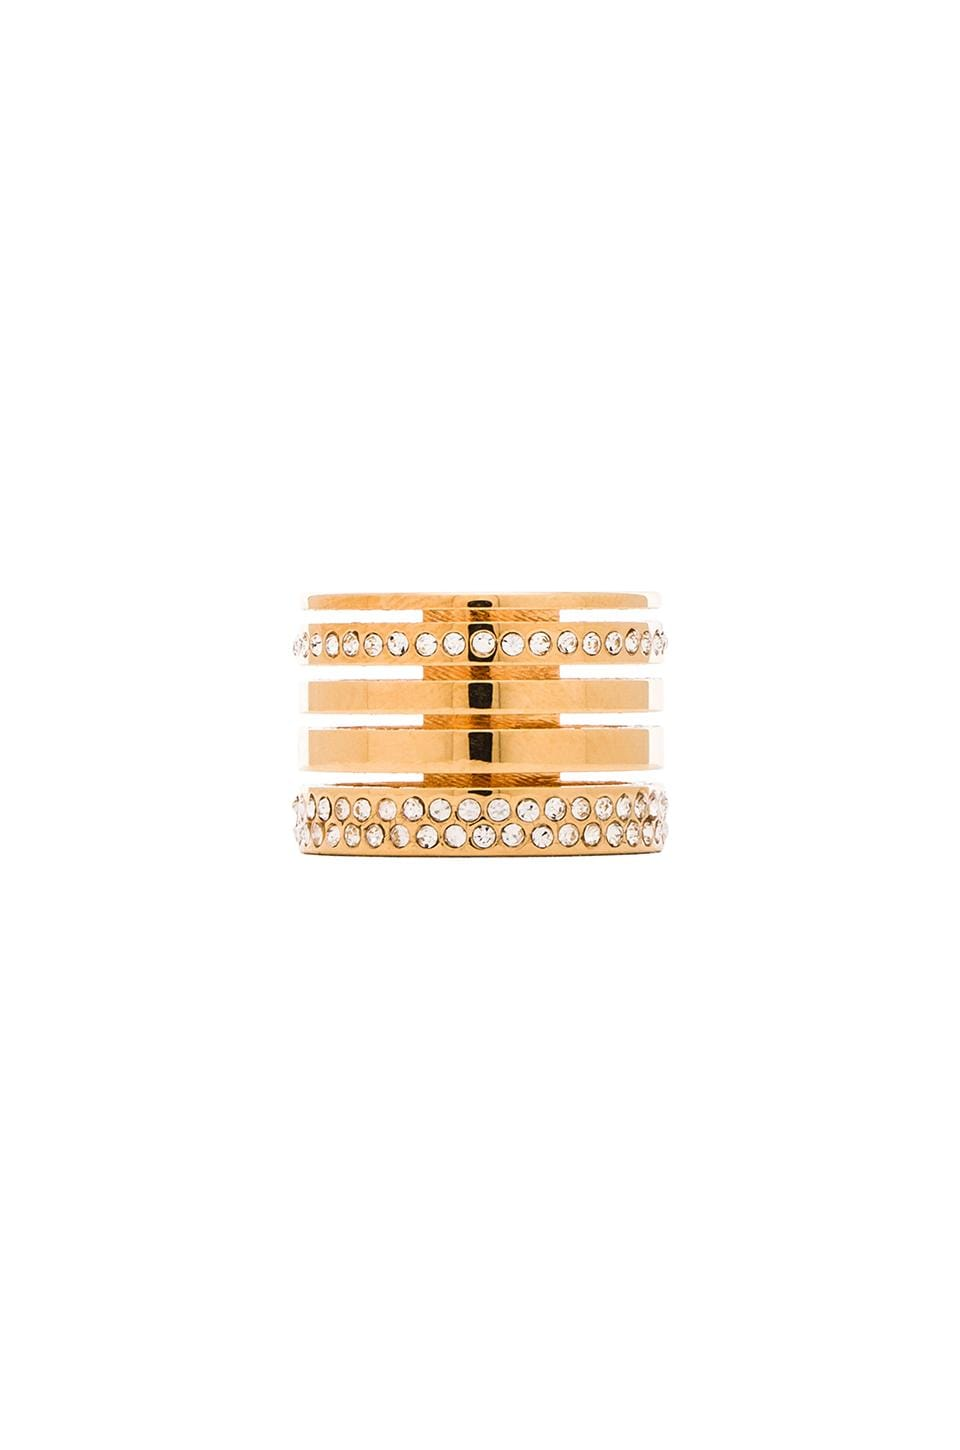 Vita Fede Pila Band Ring in Gold & Rose Gold & Silver